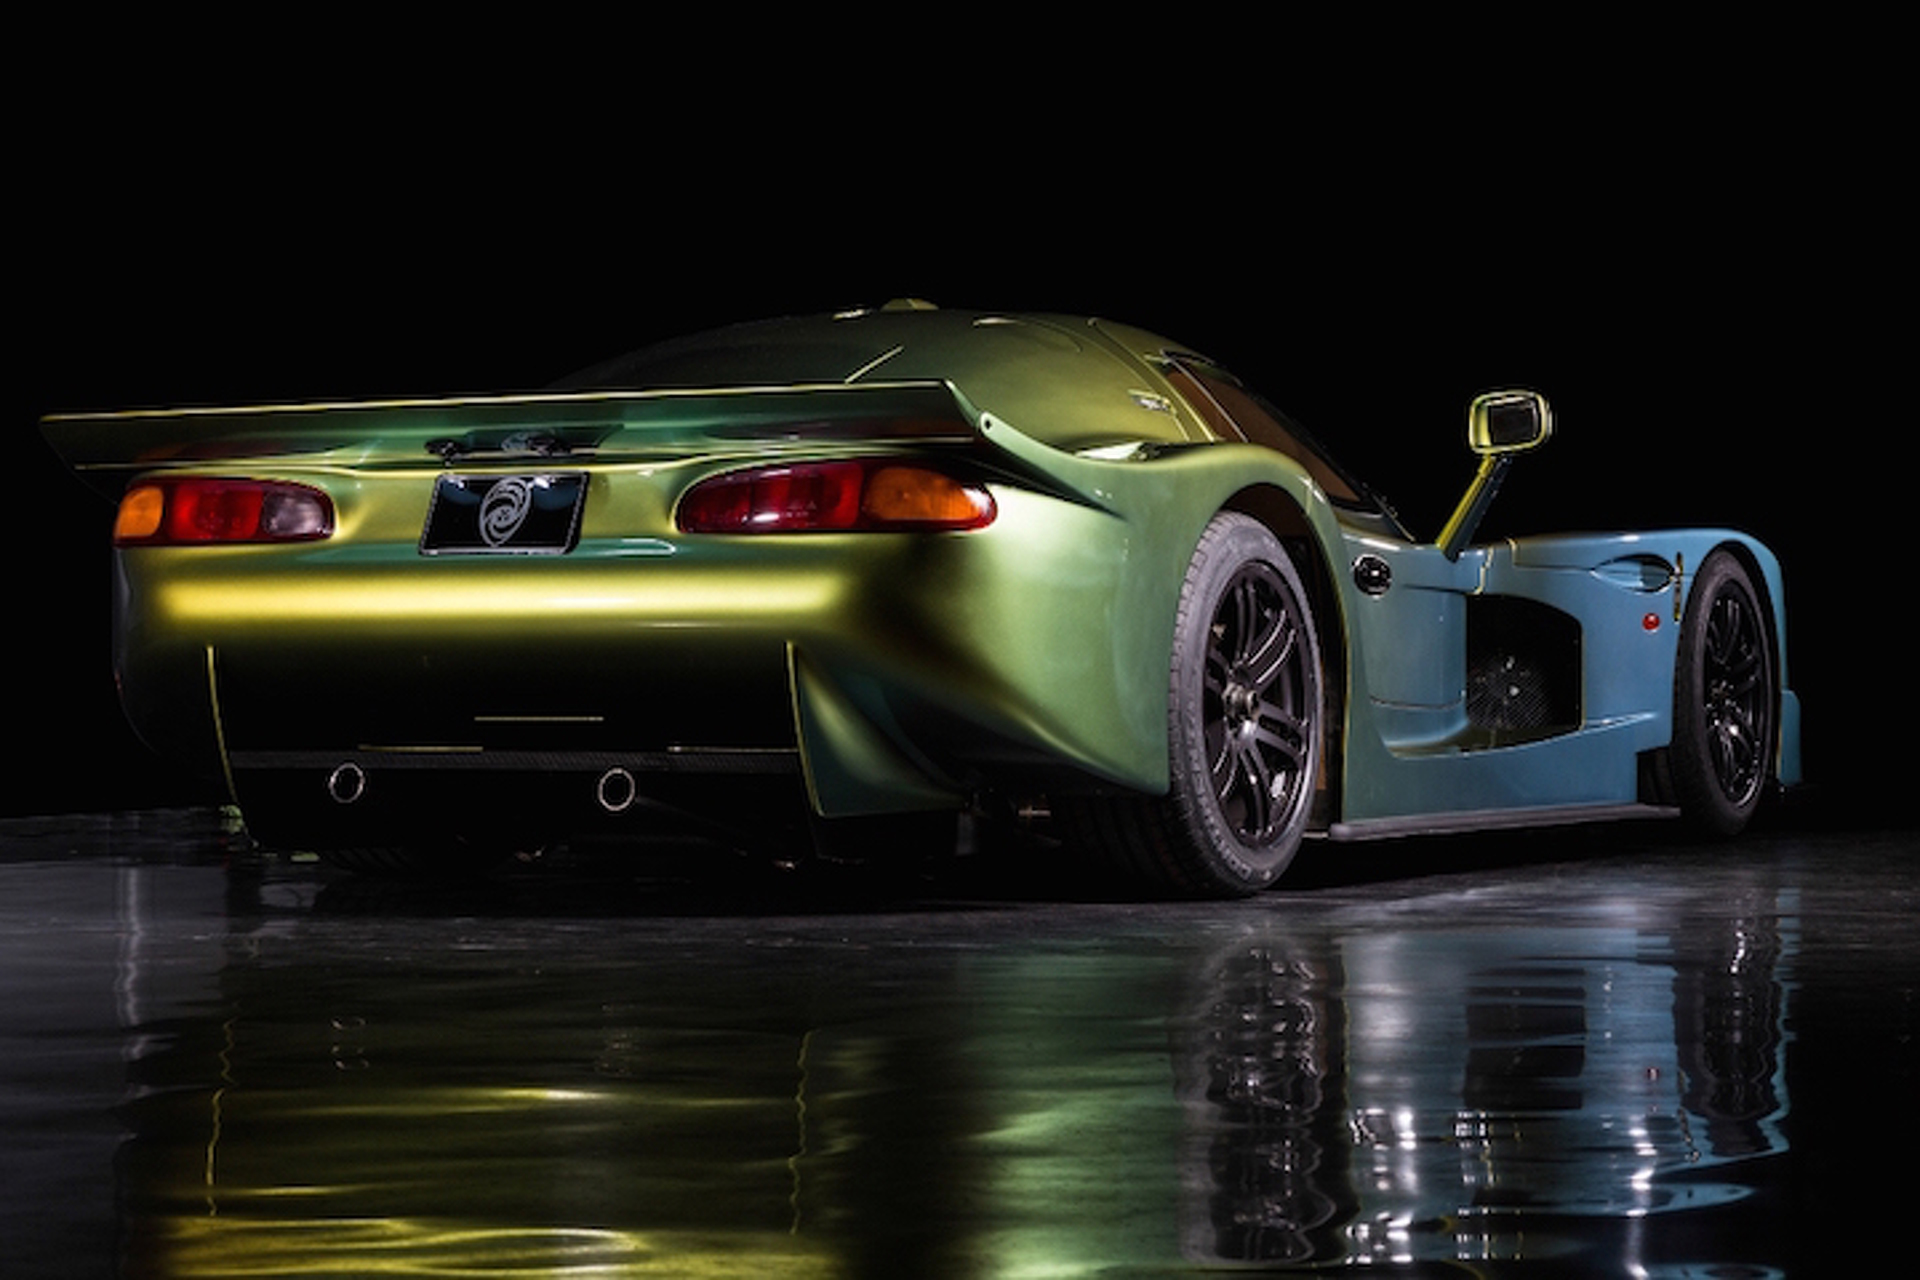 Restored Panoz Esperante GTR-1 Supercar is Big, Bold, and Bronze